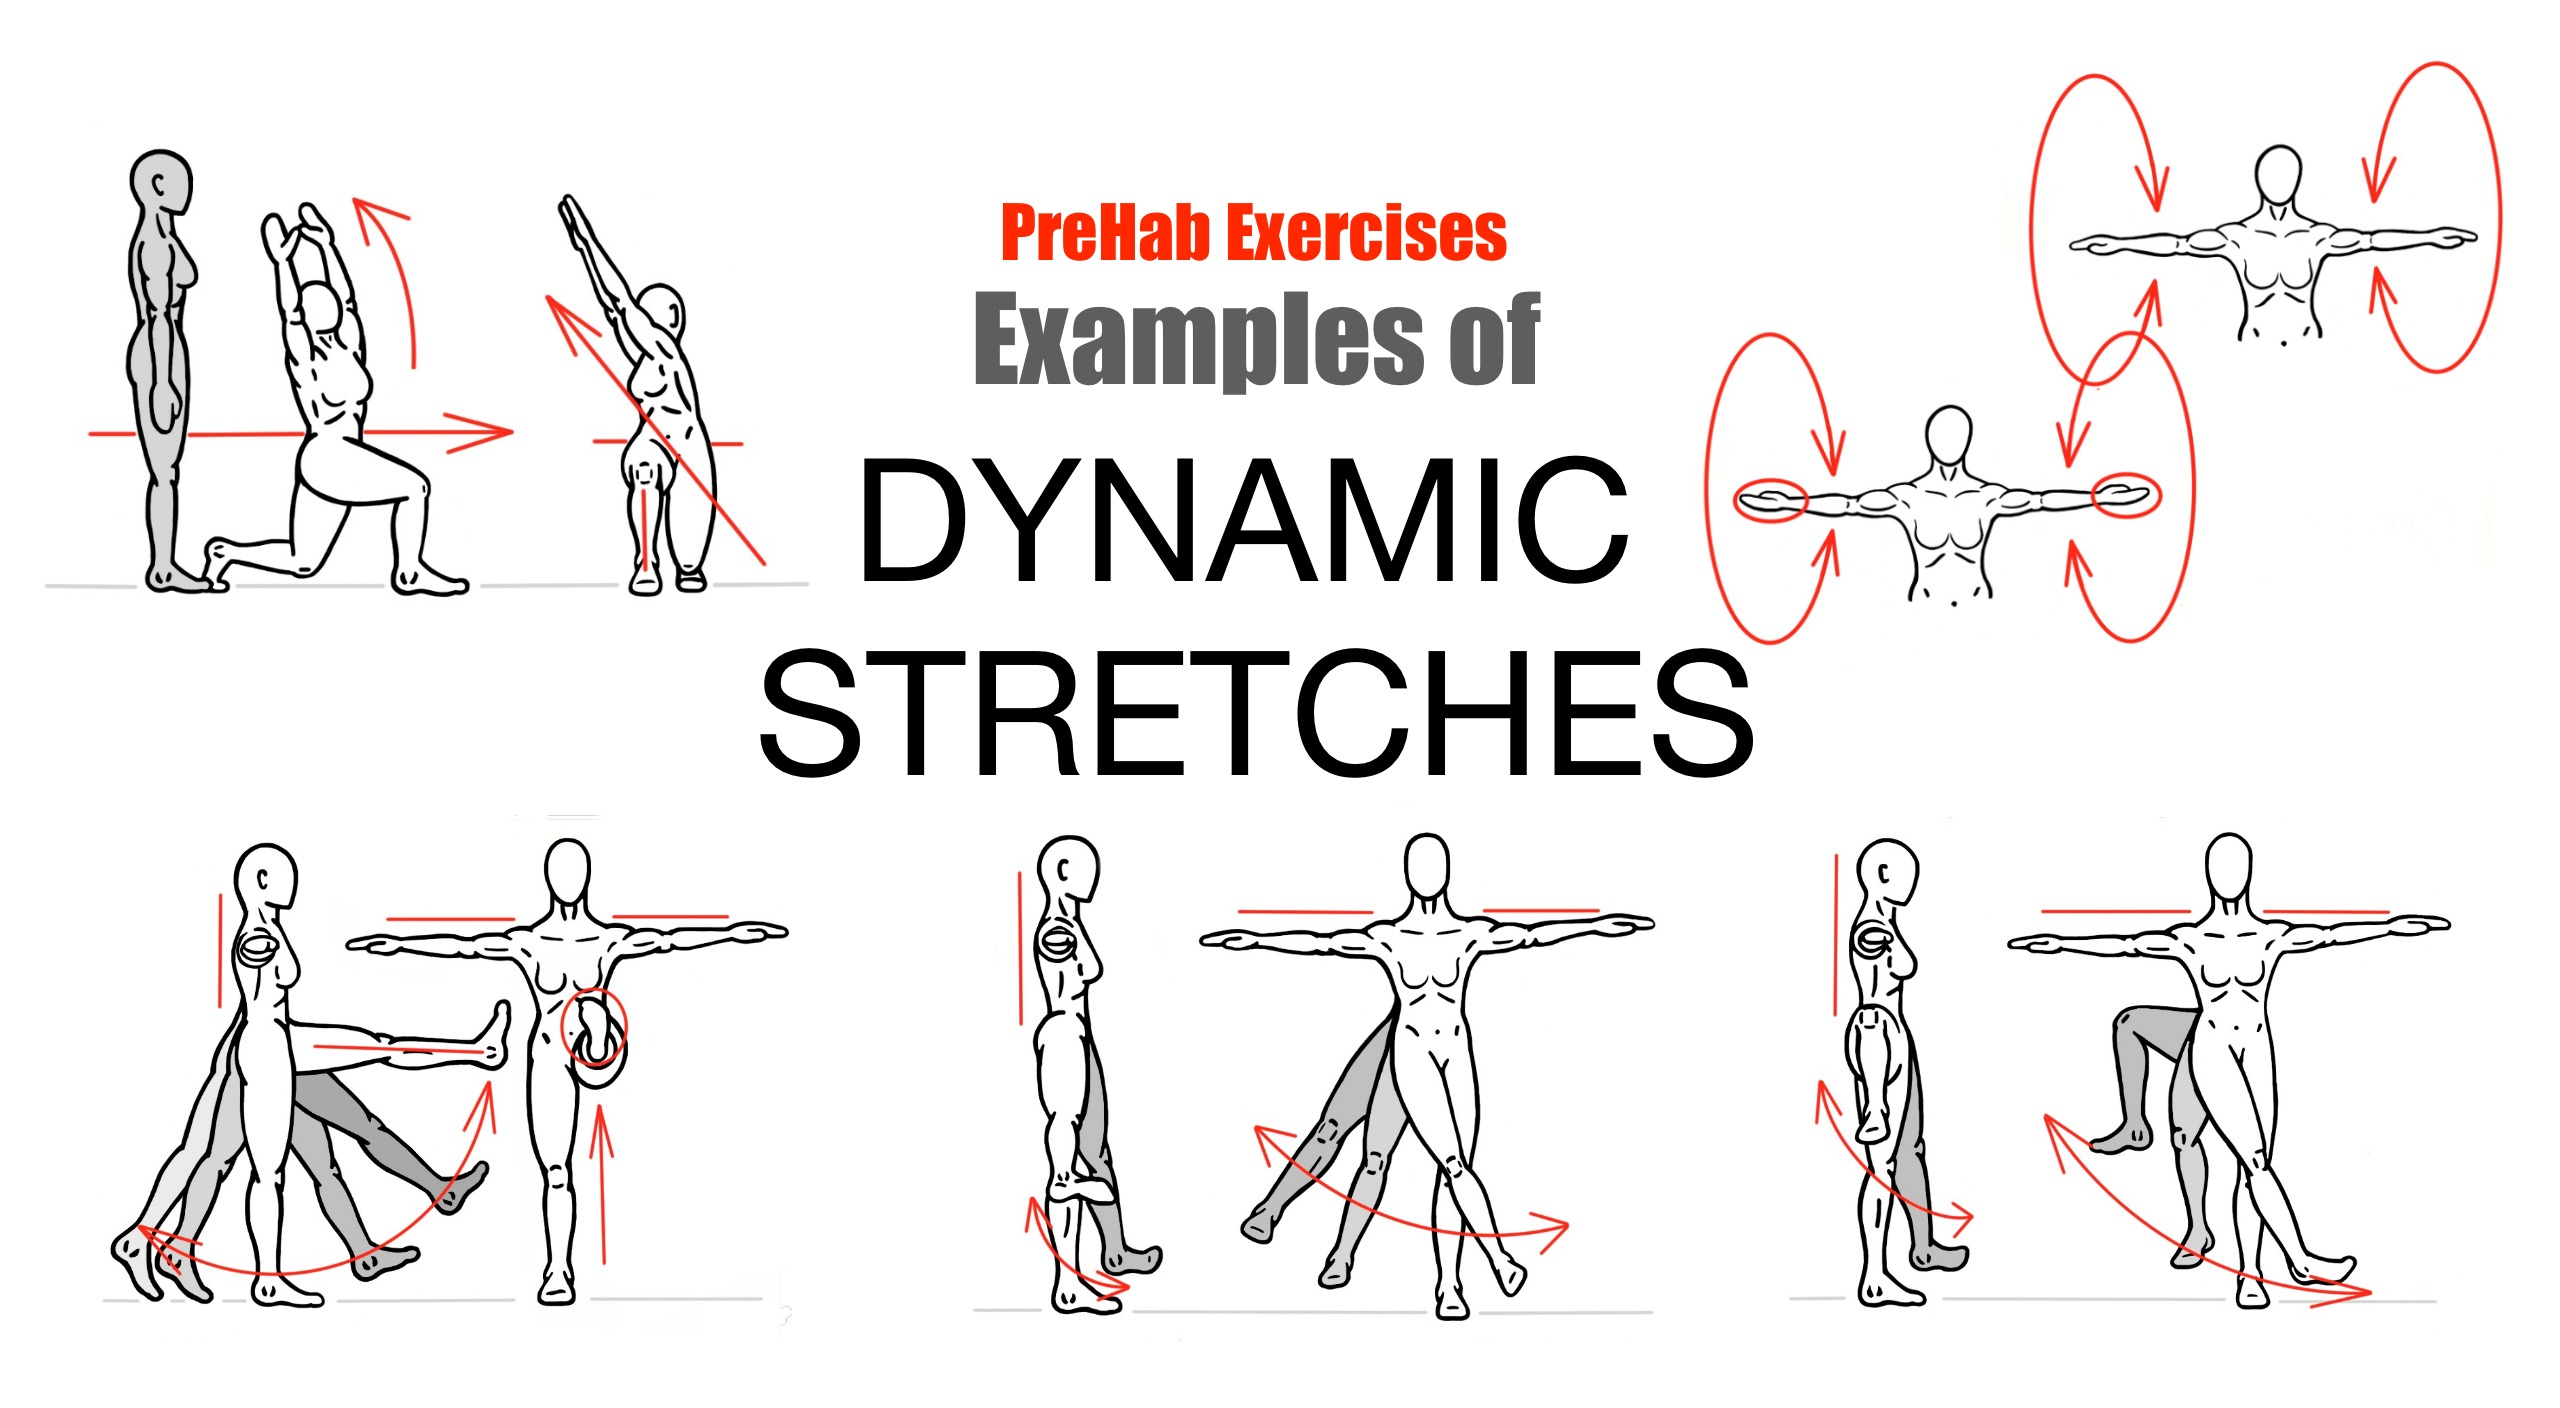 PreHab Exercises - Effective Stretching Techniques - Examples of Dynamic Stretches